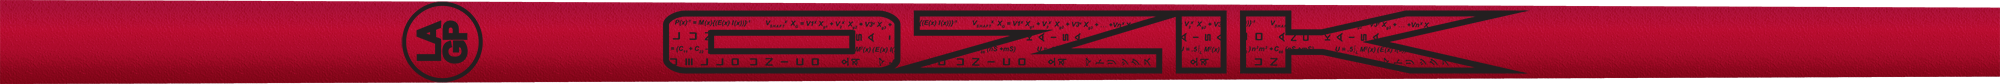 Ozik White Tie: Red Black Textured - Wood 40 R